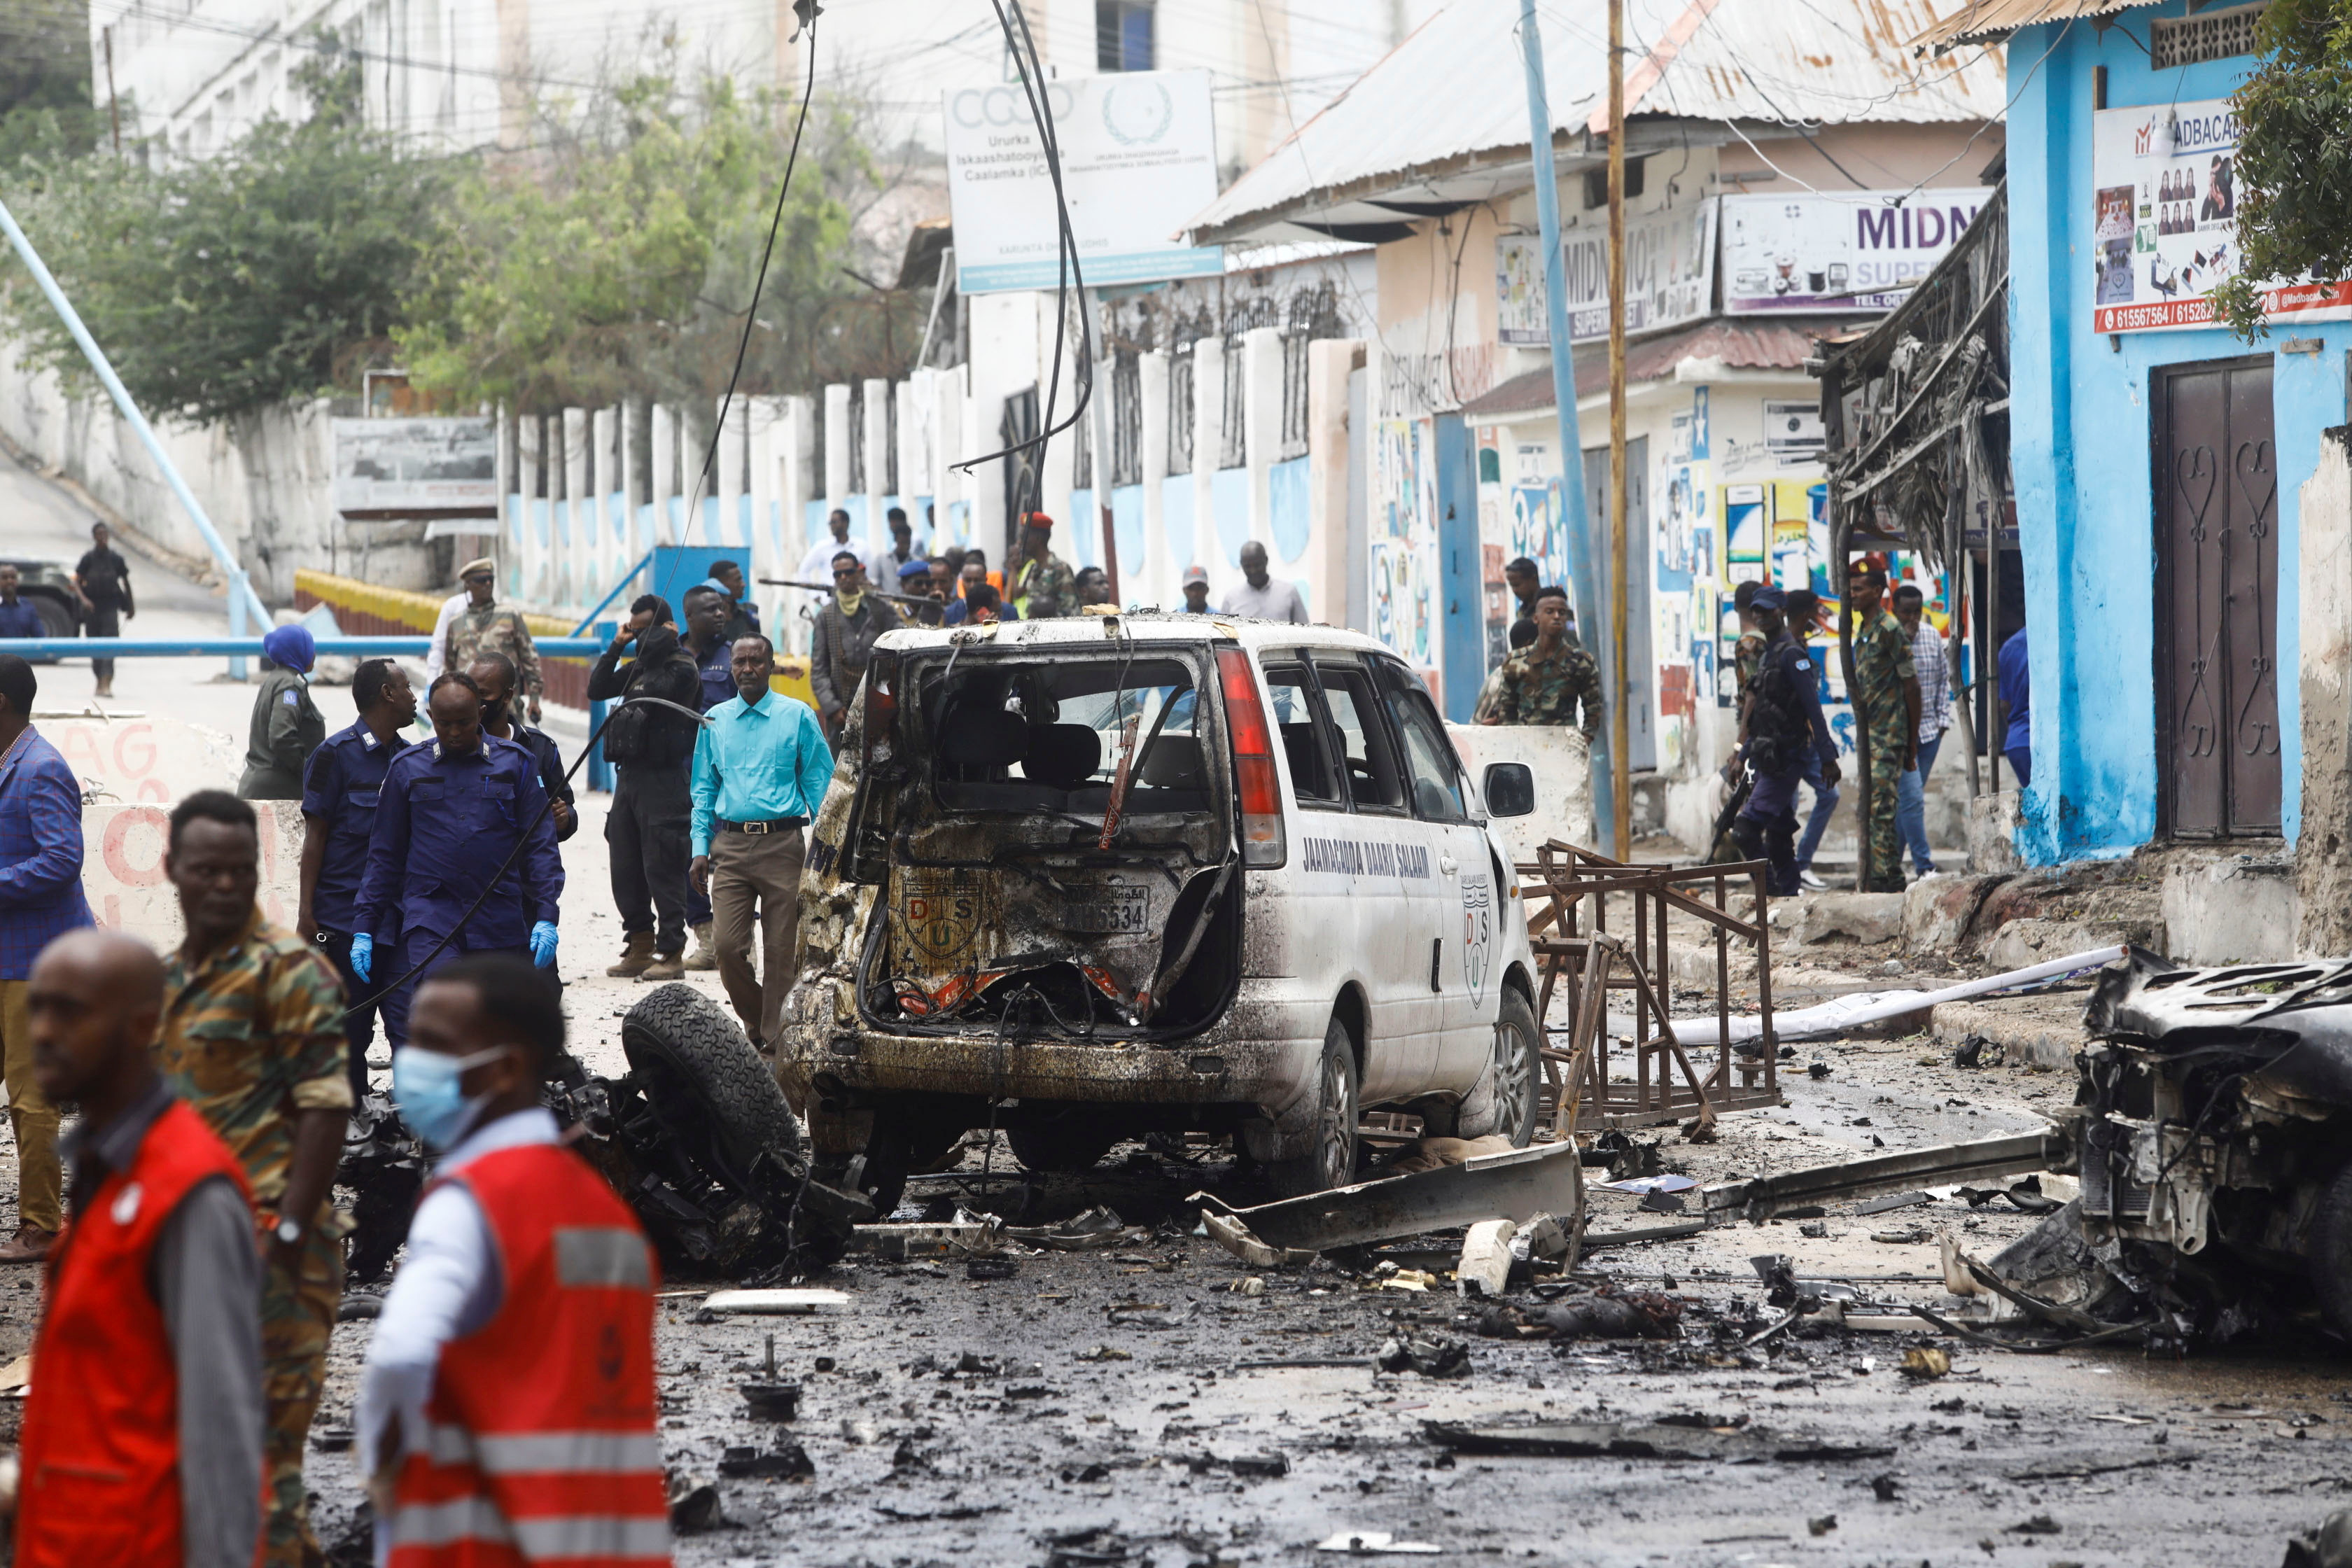 Somalian security officers gather at the scene of a suicide car bomb at a street junction near the president's residence, in Mogadishu, Somalia, September 25, 2021. REUTERS/Feisal Omar